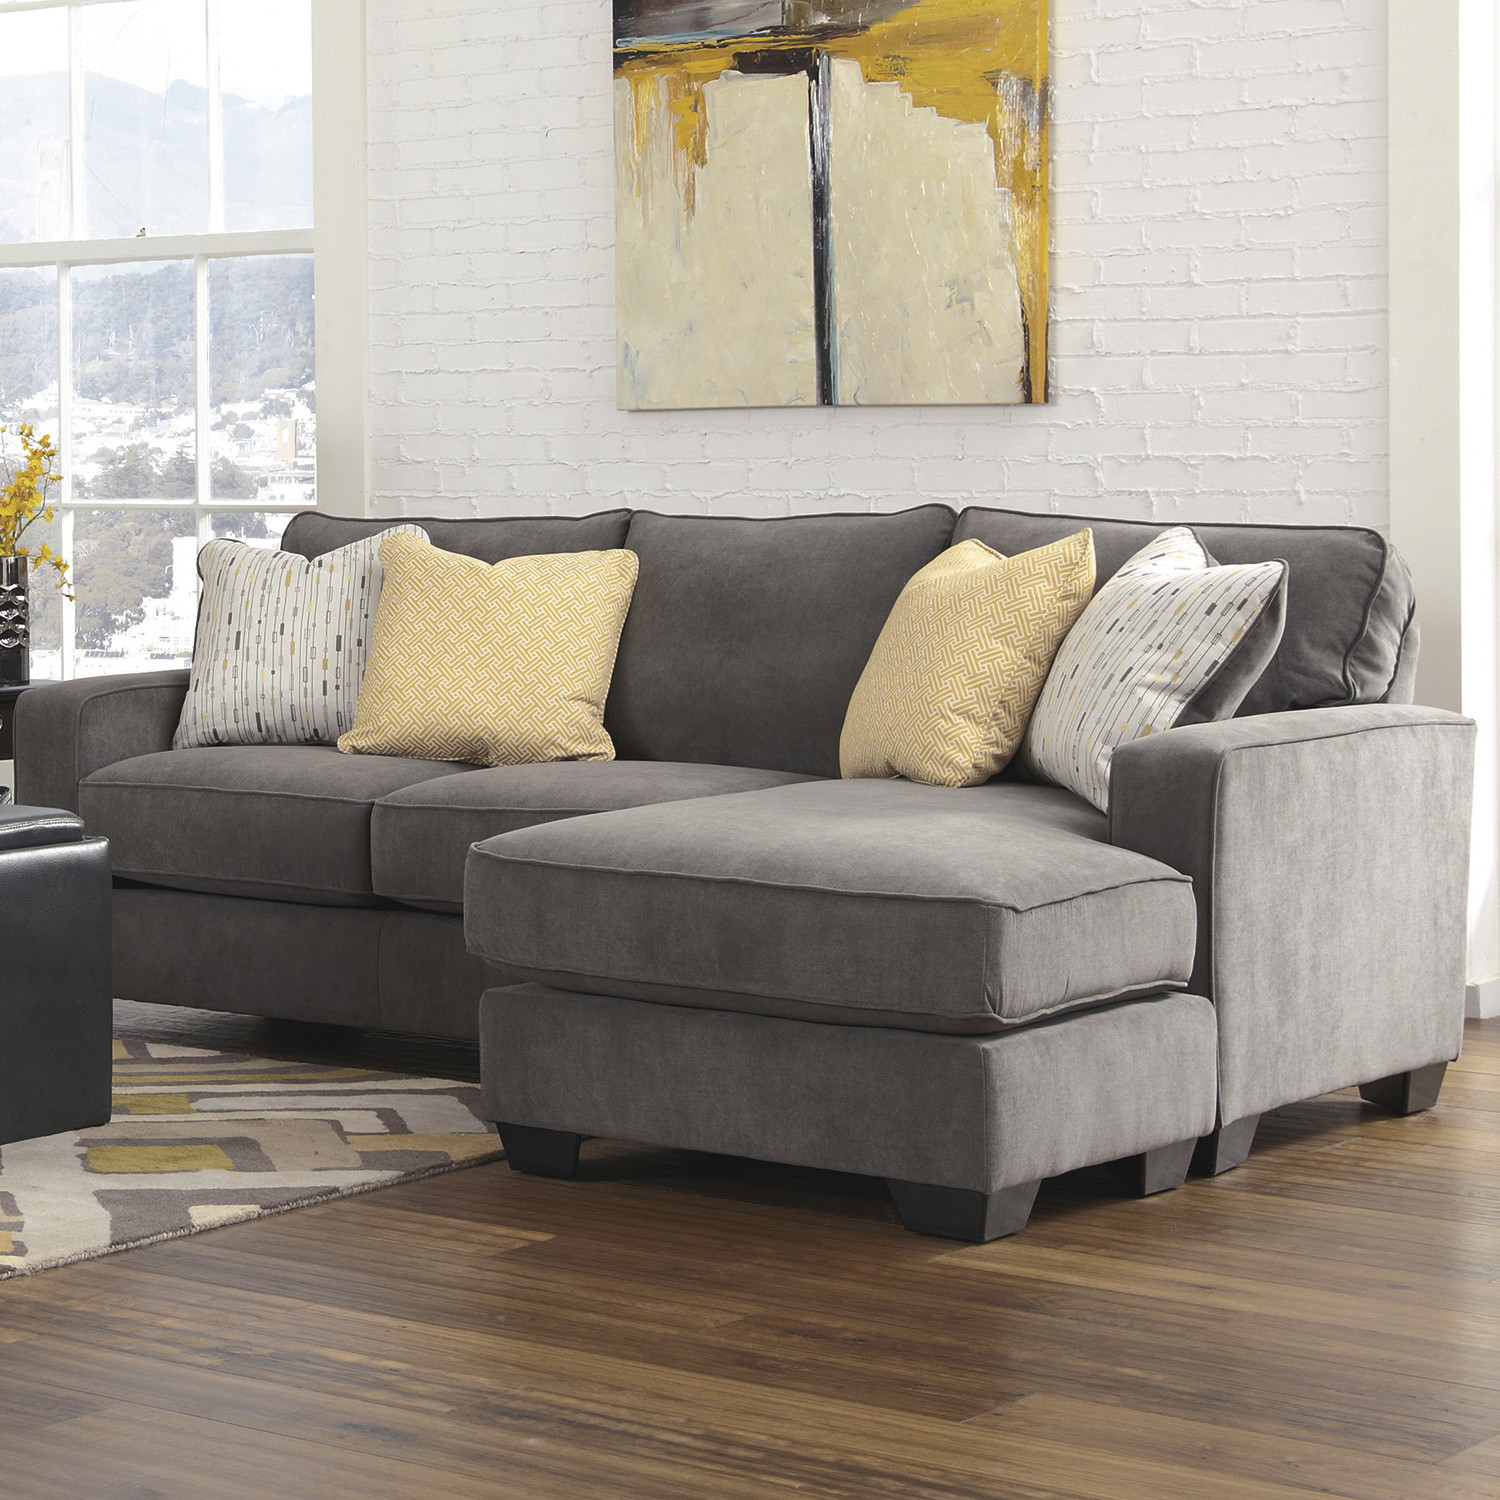 Best ideas about Wayfair Sectional Sofa . Save or Pin Mercer41 Kessel Reversible Chaise Sectional & Reviews Now.